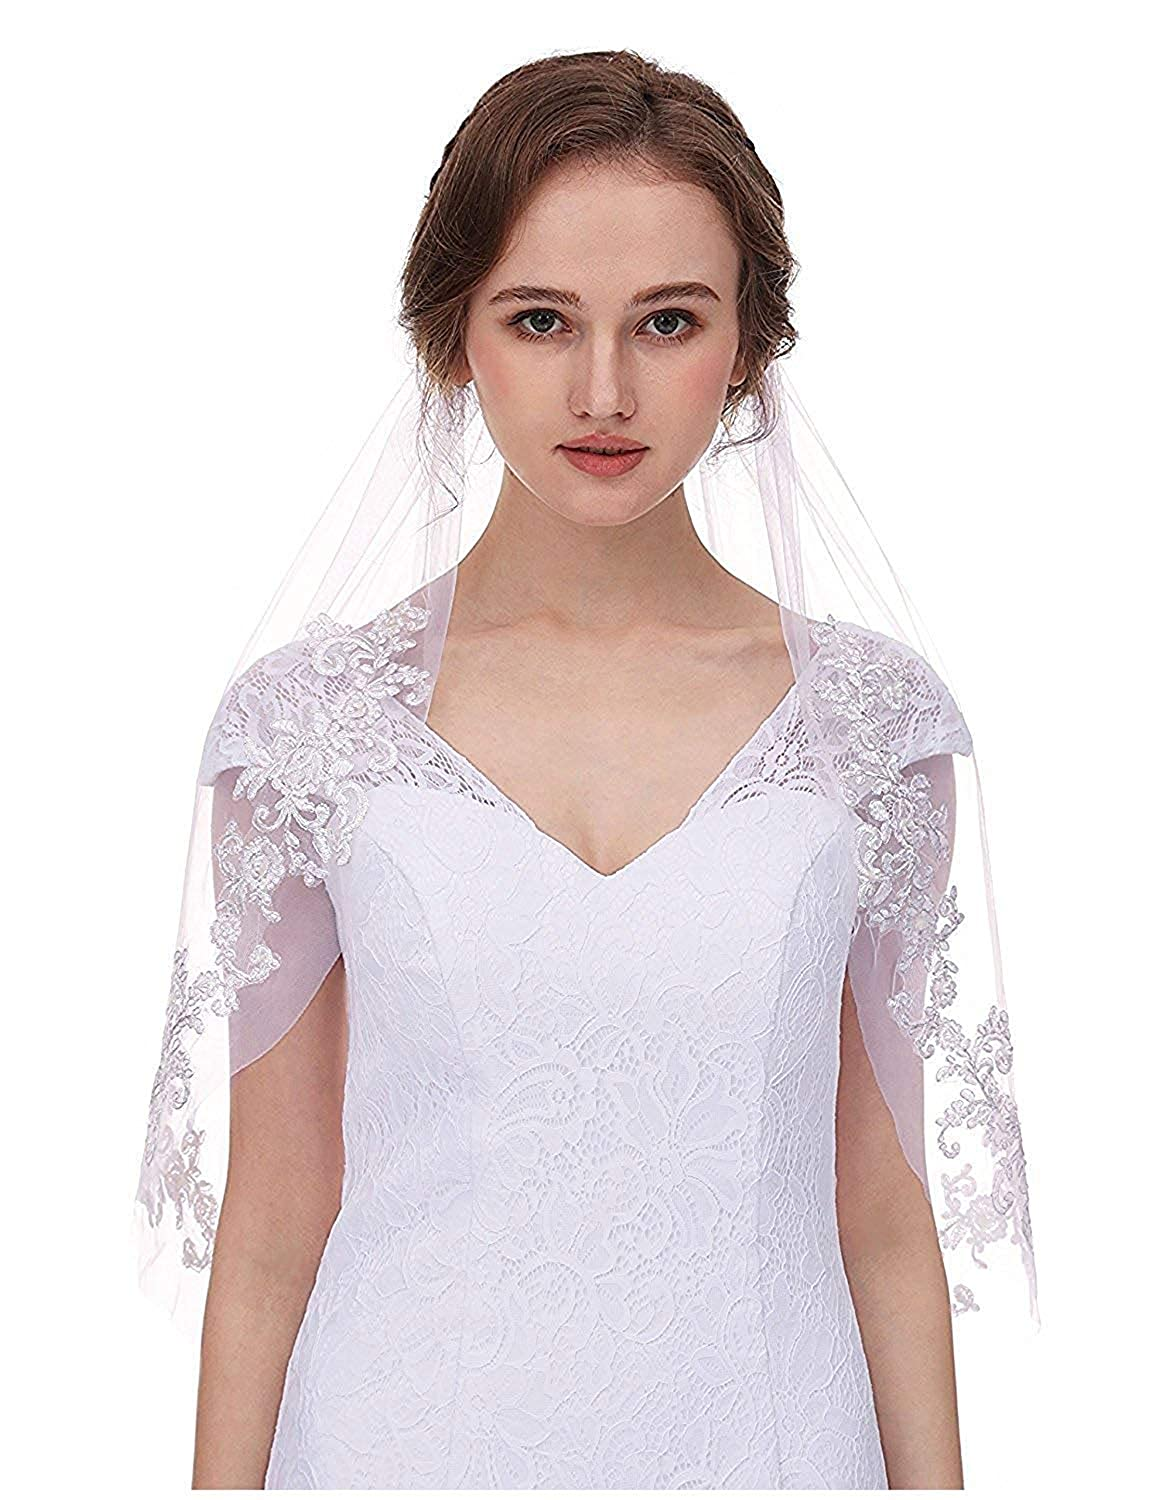 AIBIYI Vintage Inspired Lace Soft Tulle Wedding Veils For Bride With Comb 2 Layers A2 New (without pearls)